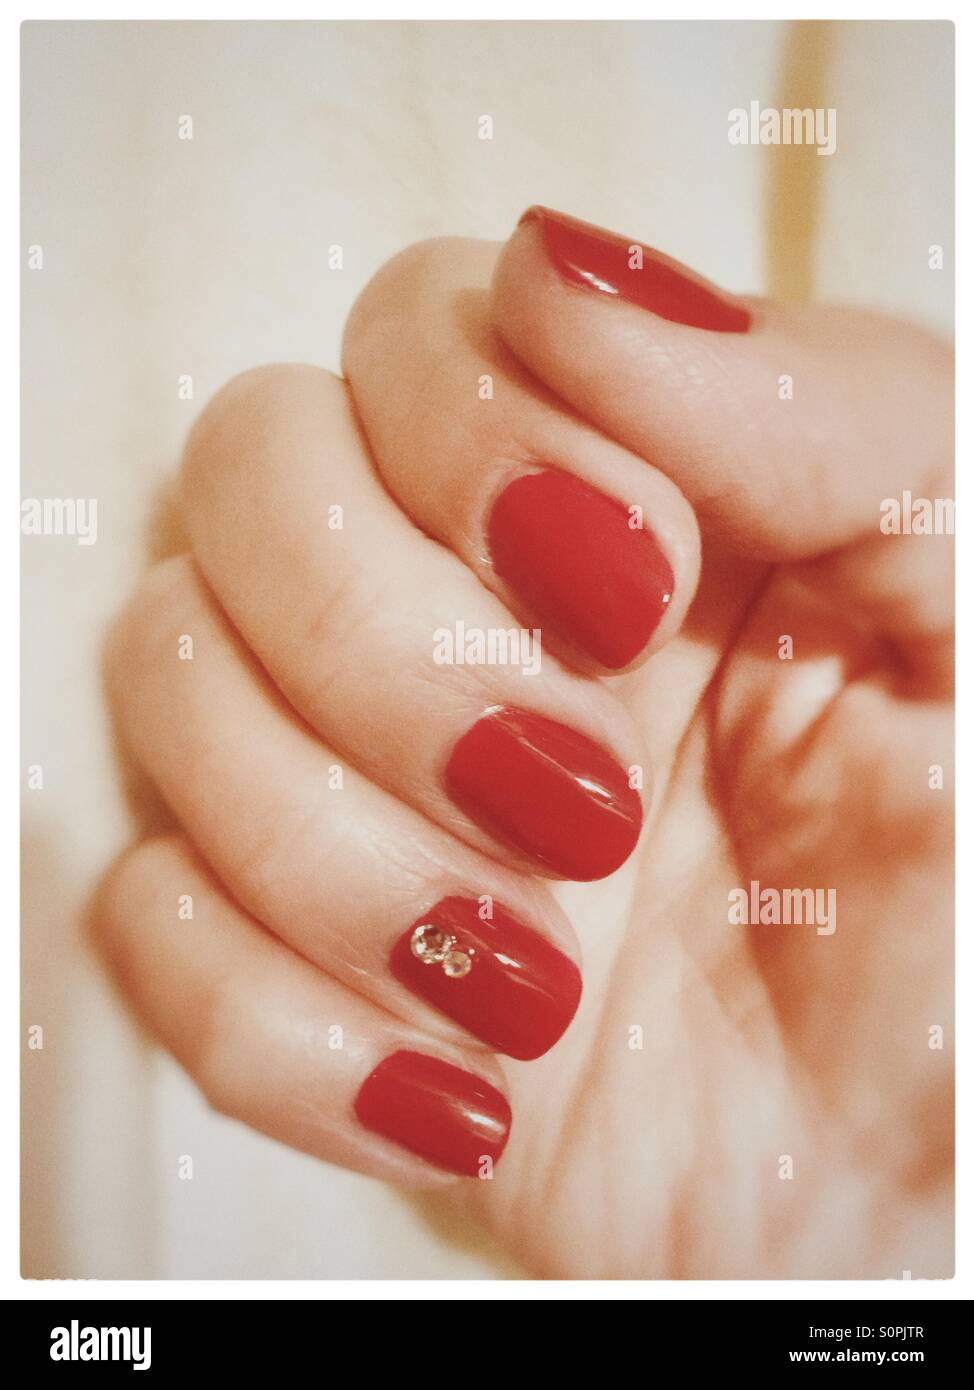 Red polished nails with 2 diamonds on the ring finger nail Stock ...